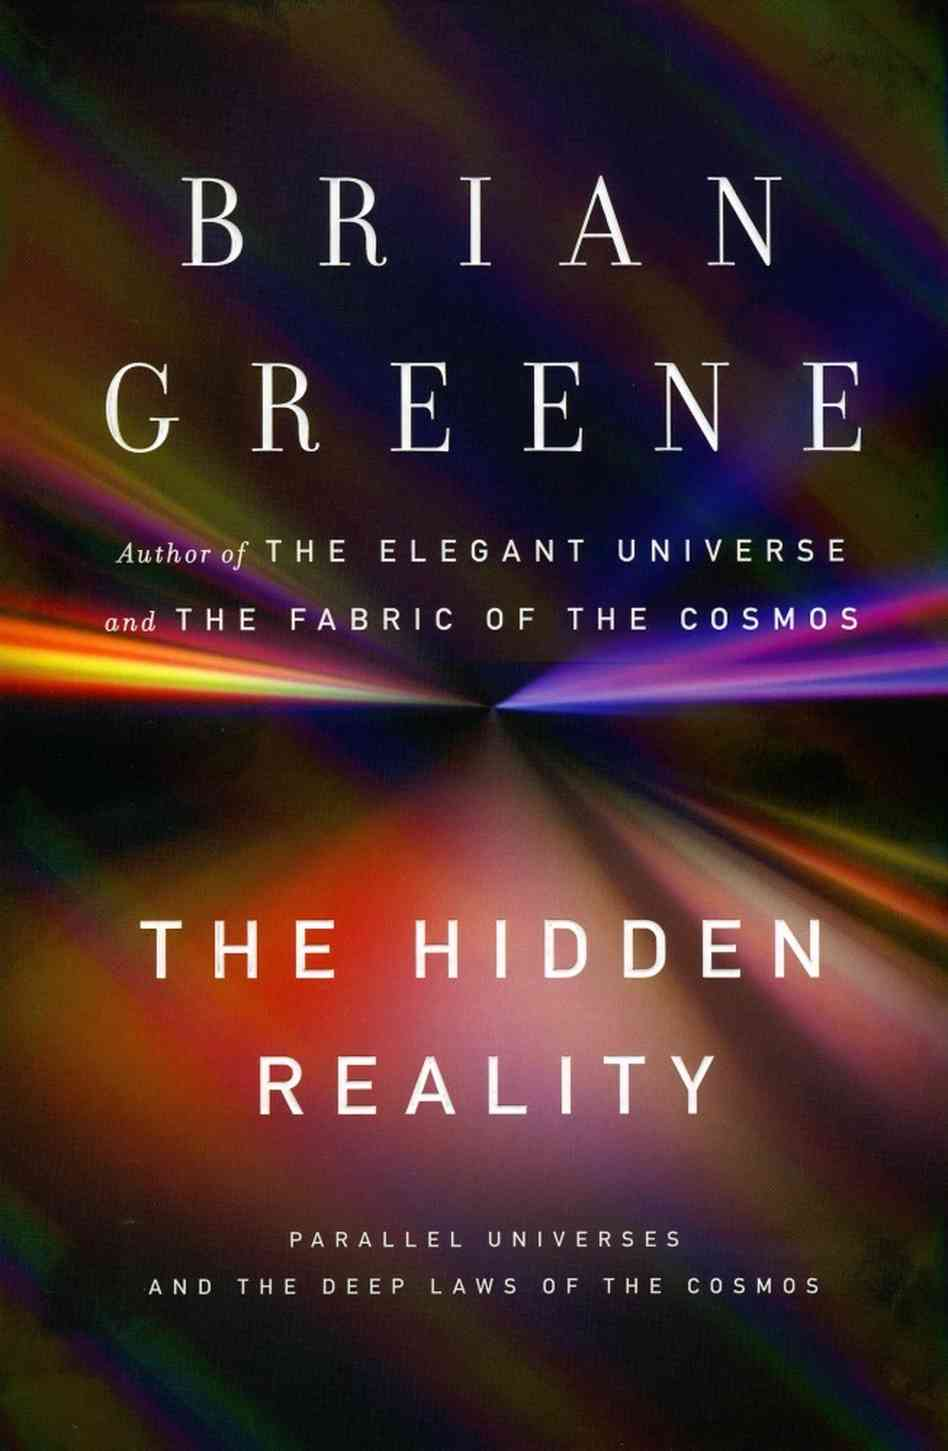 an analysis of a book by brian greene on the theory of everything Physicists prove to be of many minds about a unified theory of the universe brian greene,  we extend the analysis of  theory of everything.